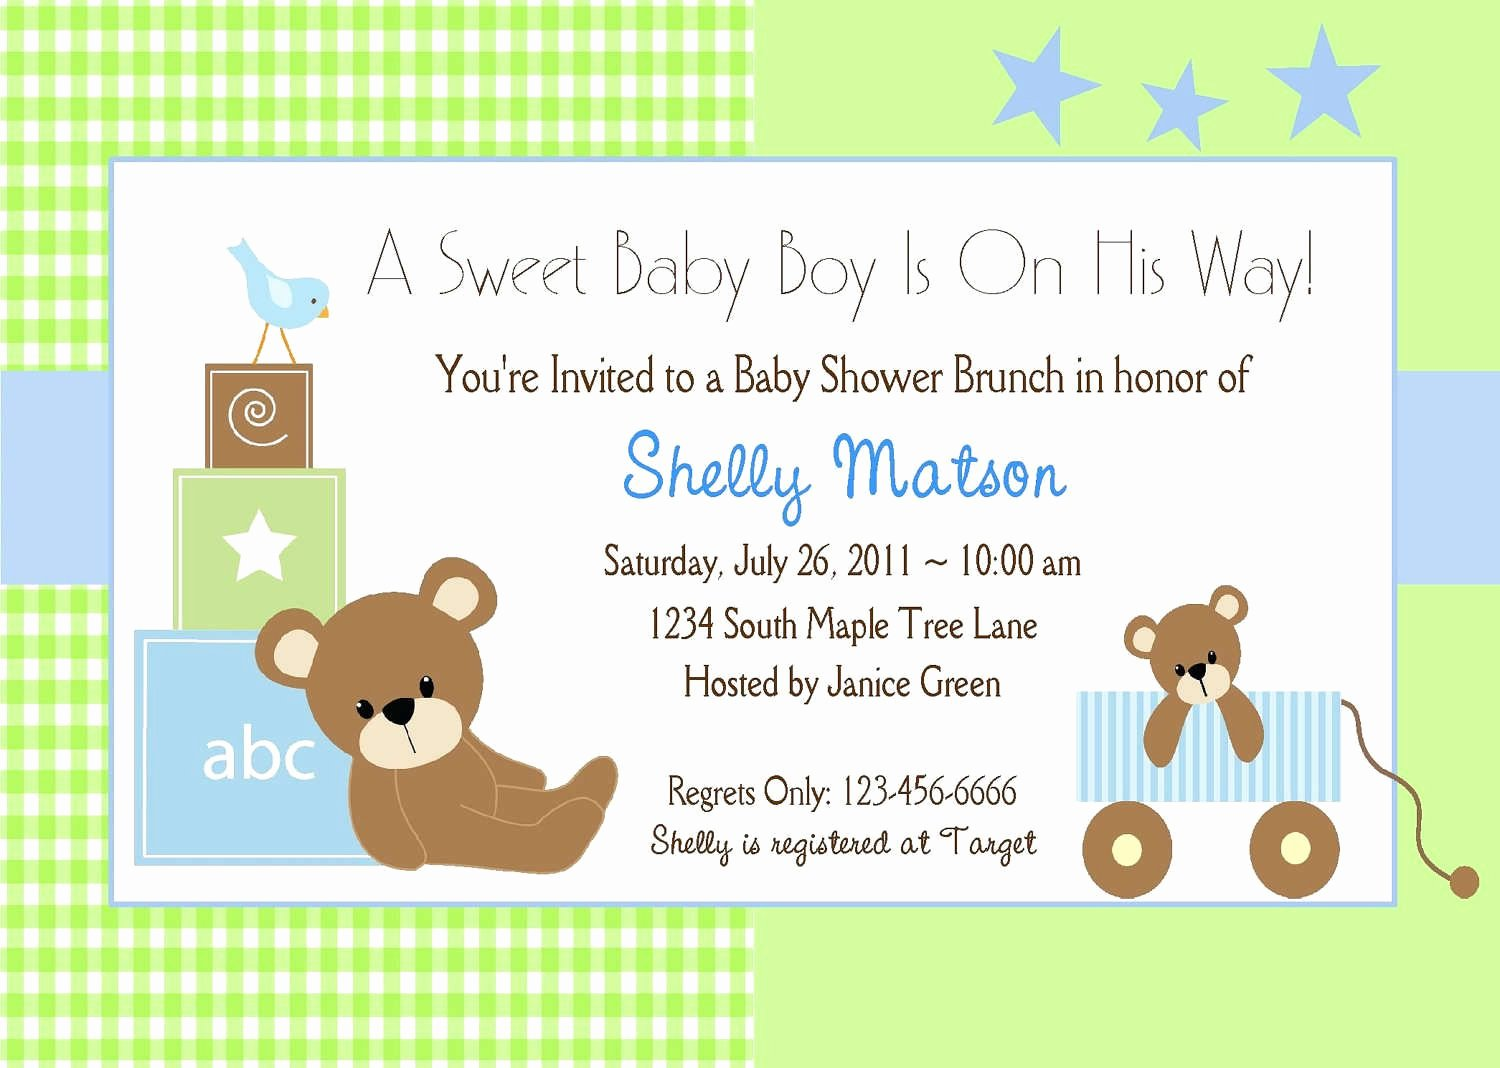 Baby Shower Invitation Template Free Fresh Baby Shower Invitation Baby Shower Invitation Templates